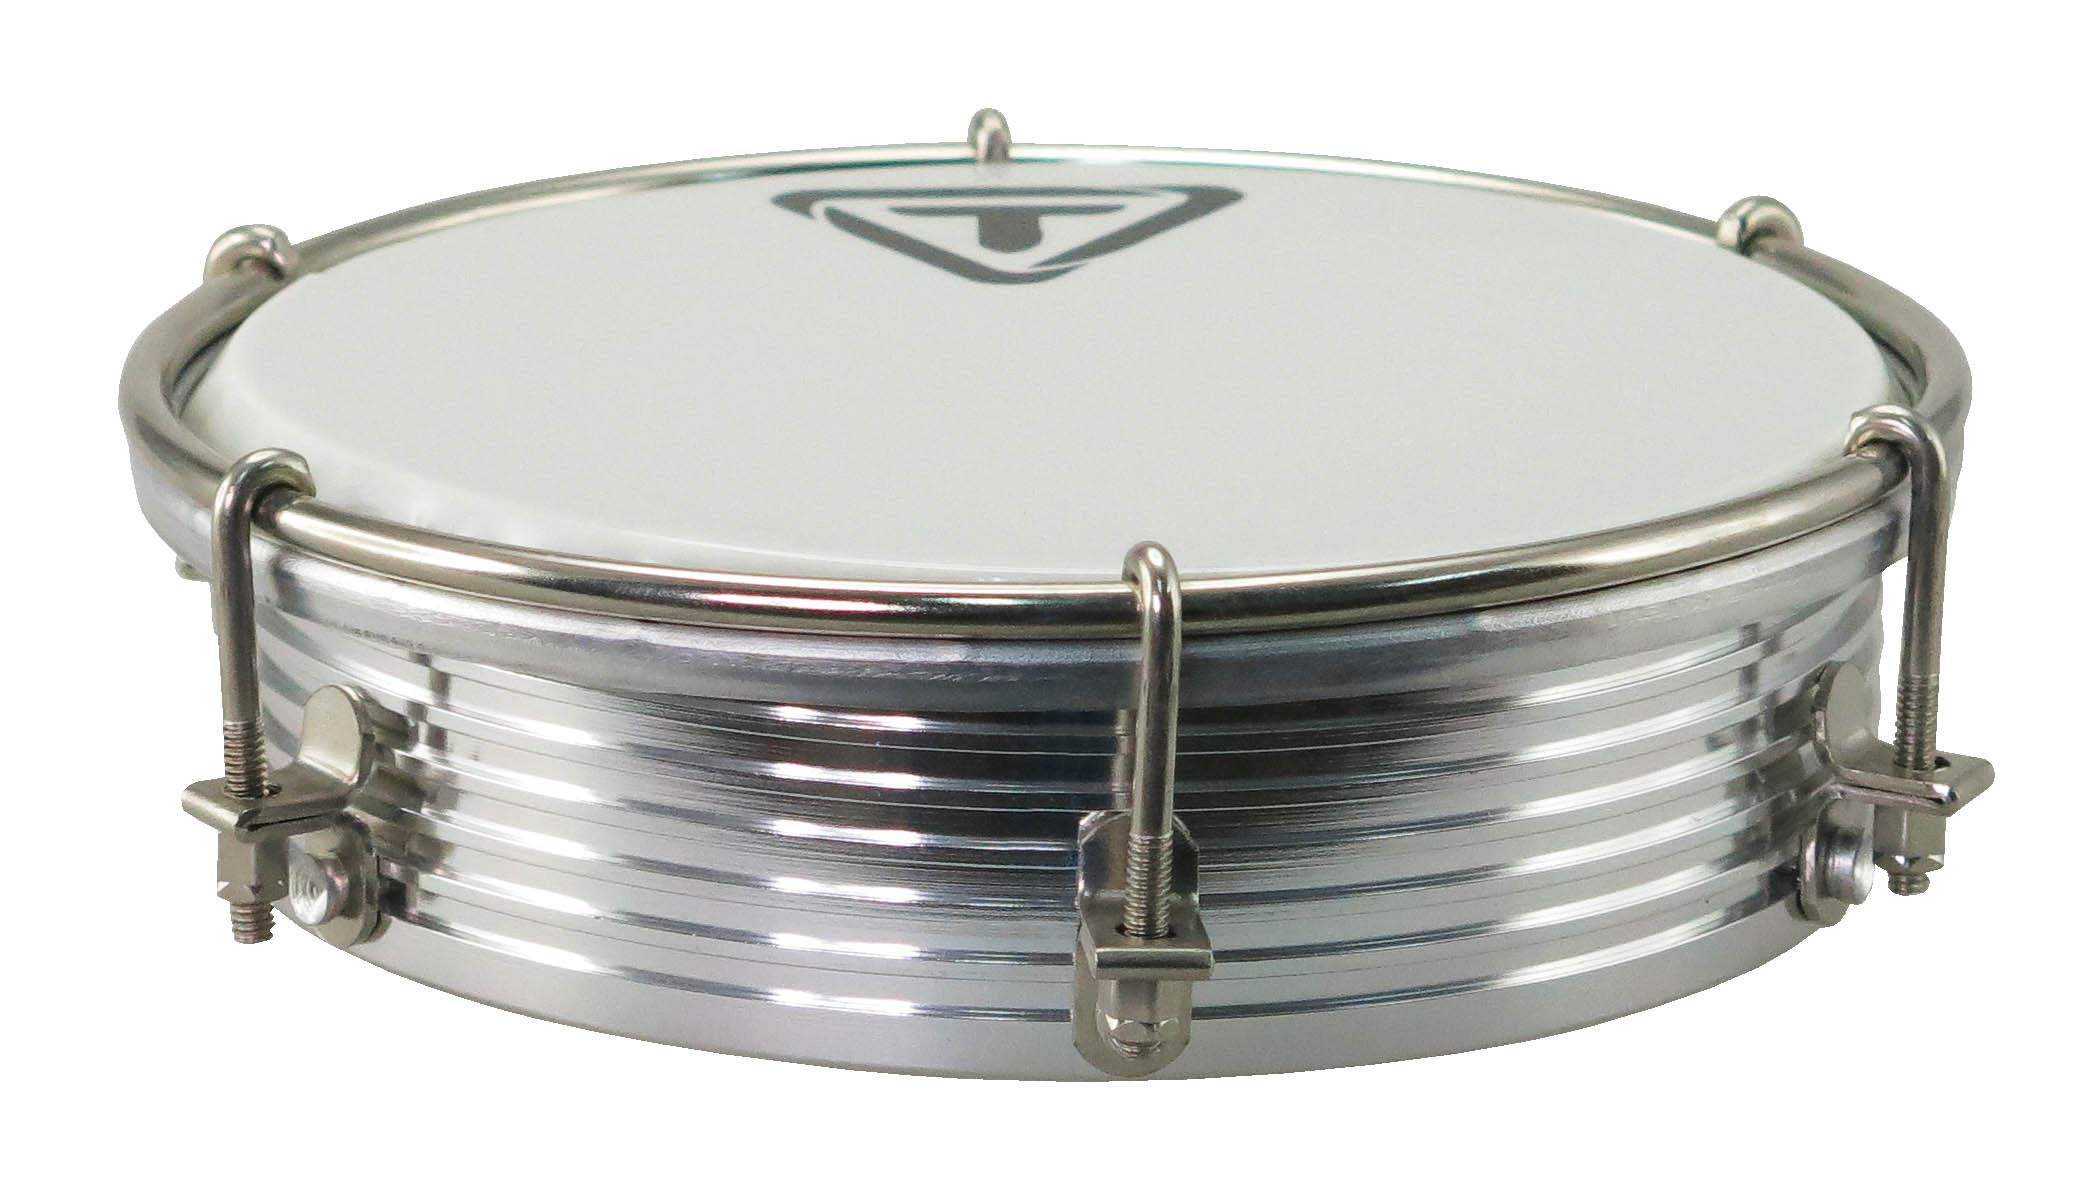 Tycoon Percussion TPTB-6 ALU 6-Inch Aluminum Tambourim by Tycoon Percussion